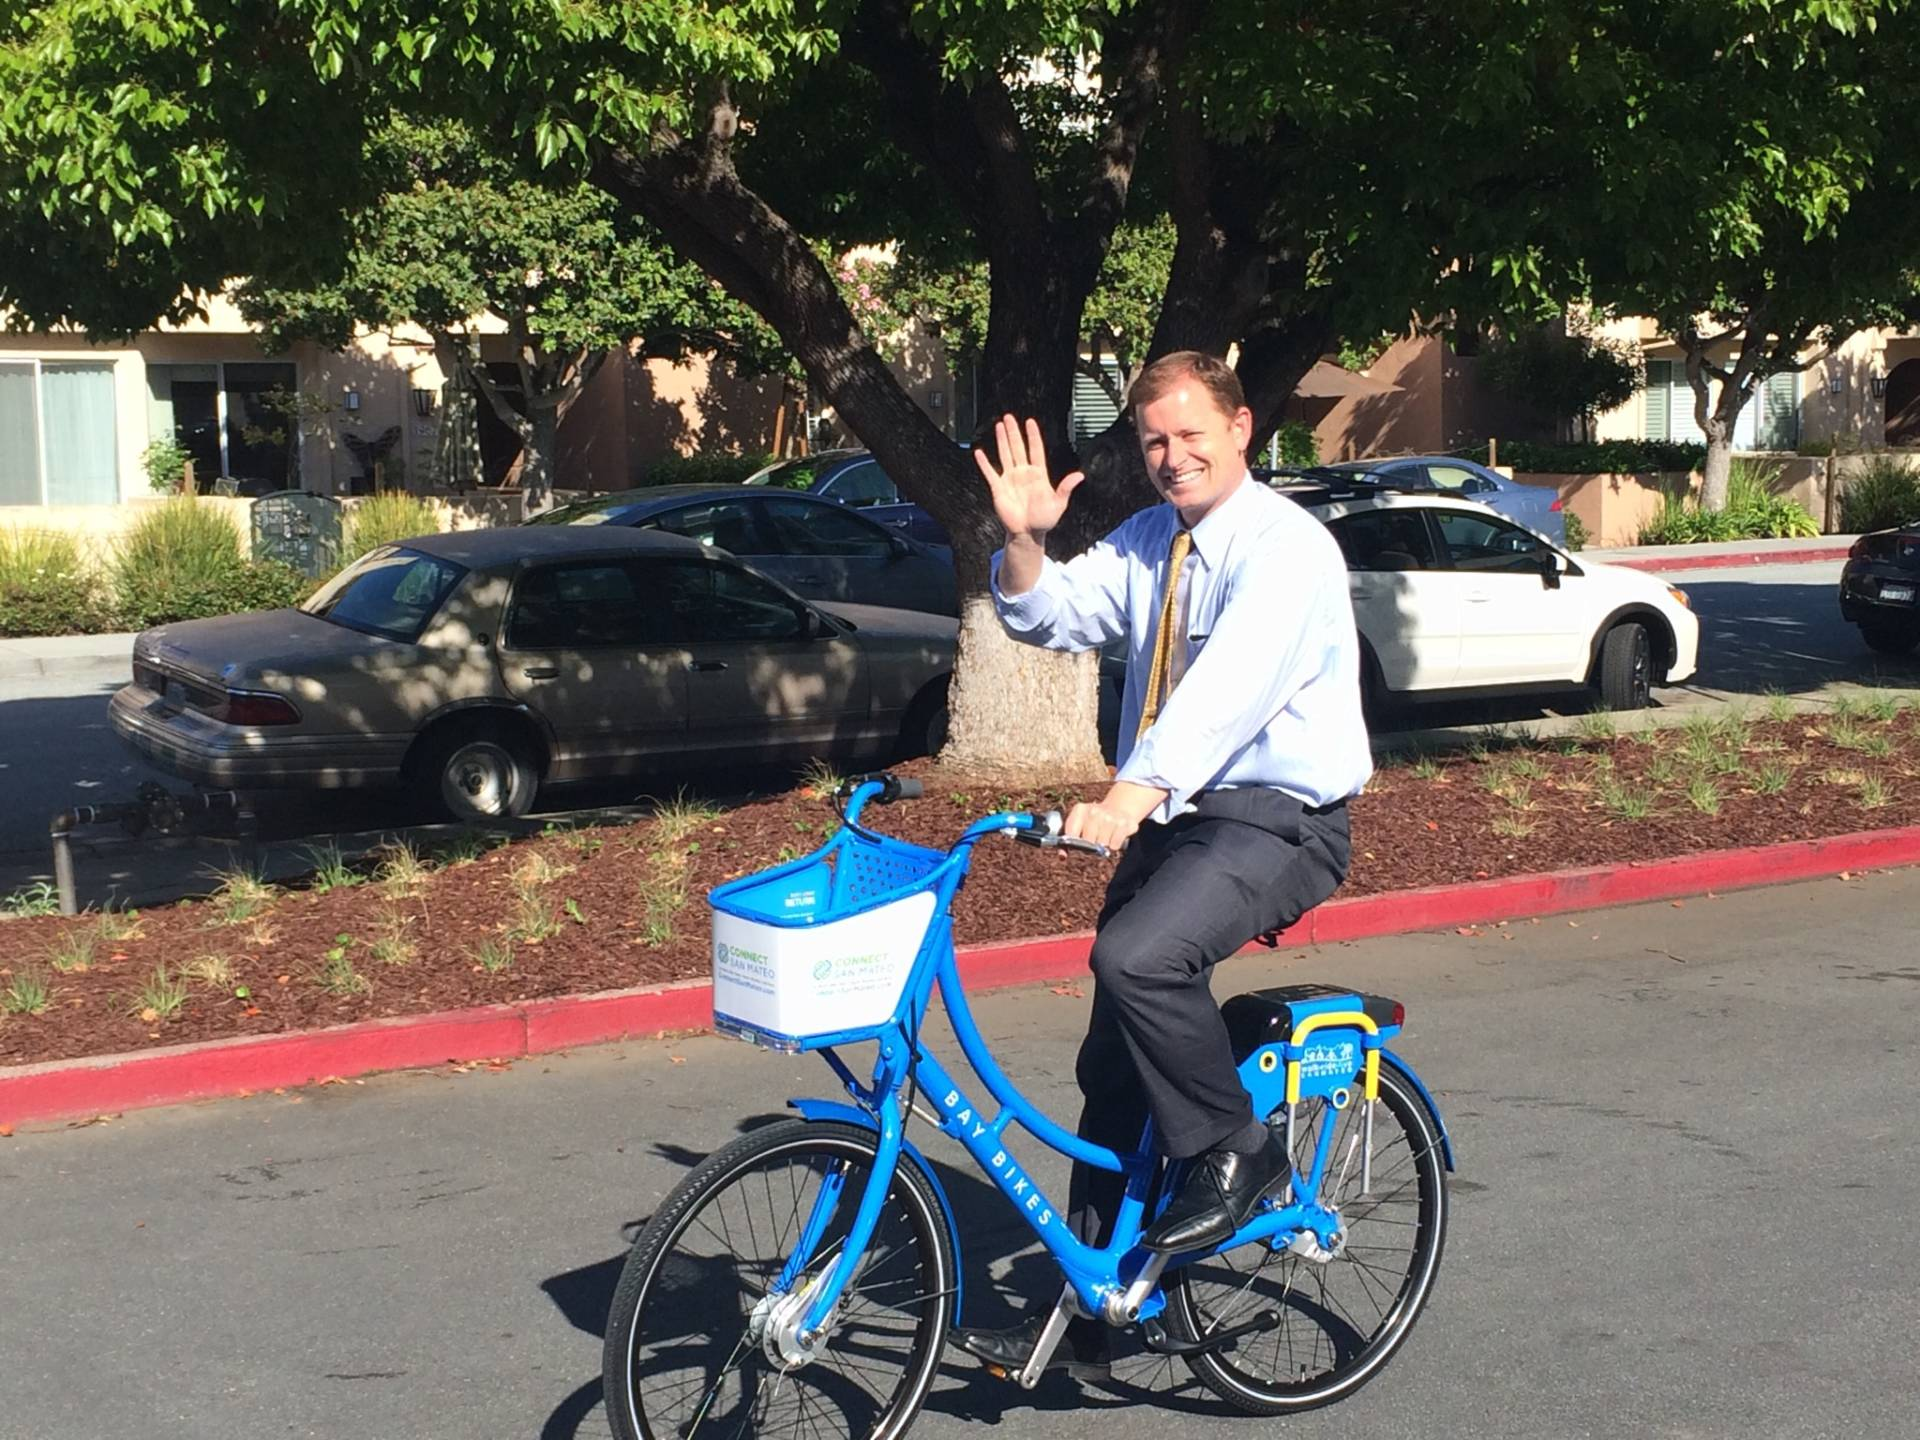 San Mateo Launches a Bike Share System on Bike to Work Day